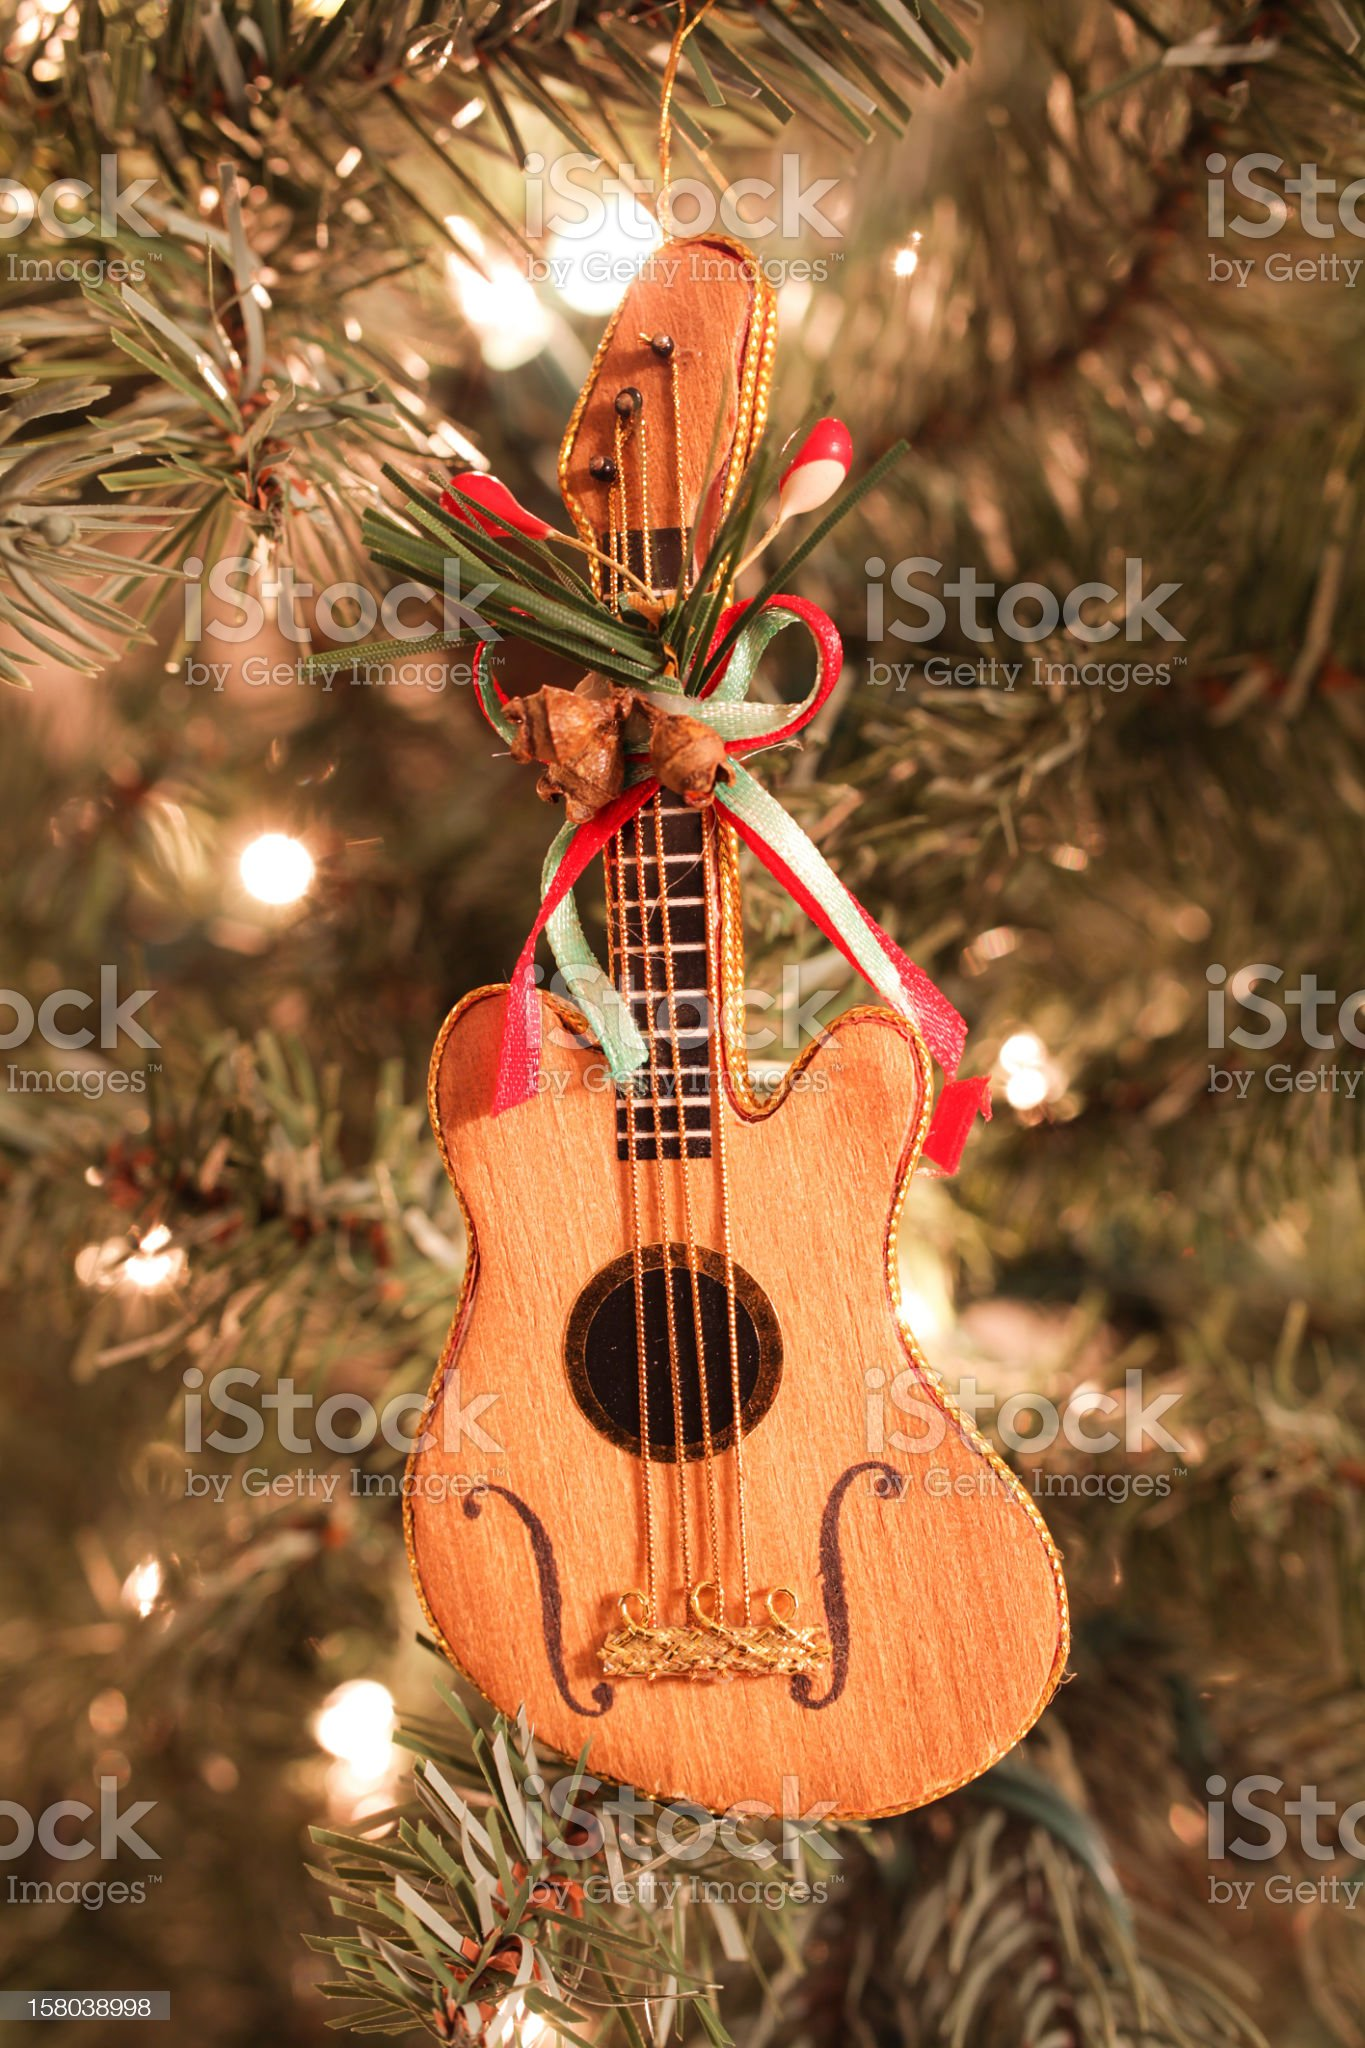 Guitar Christmas Ornament royalty-free stock photo